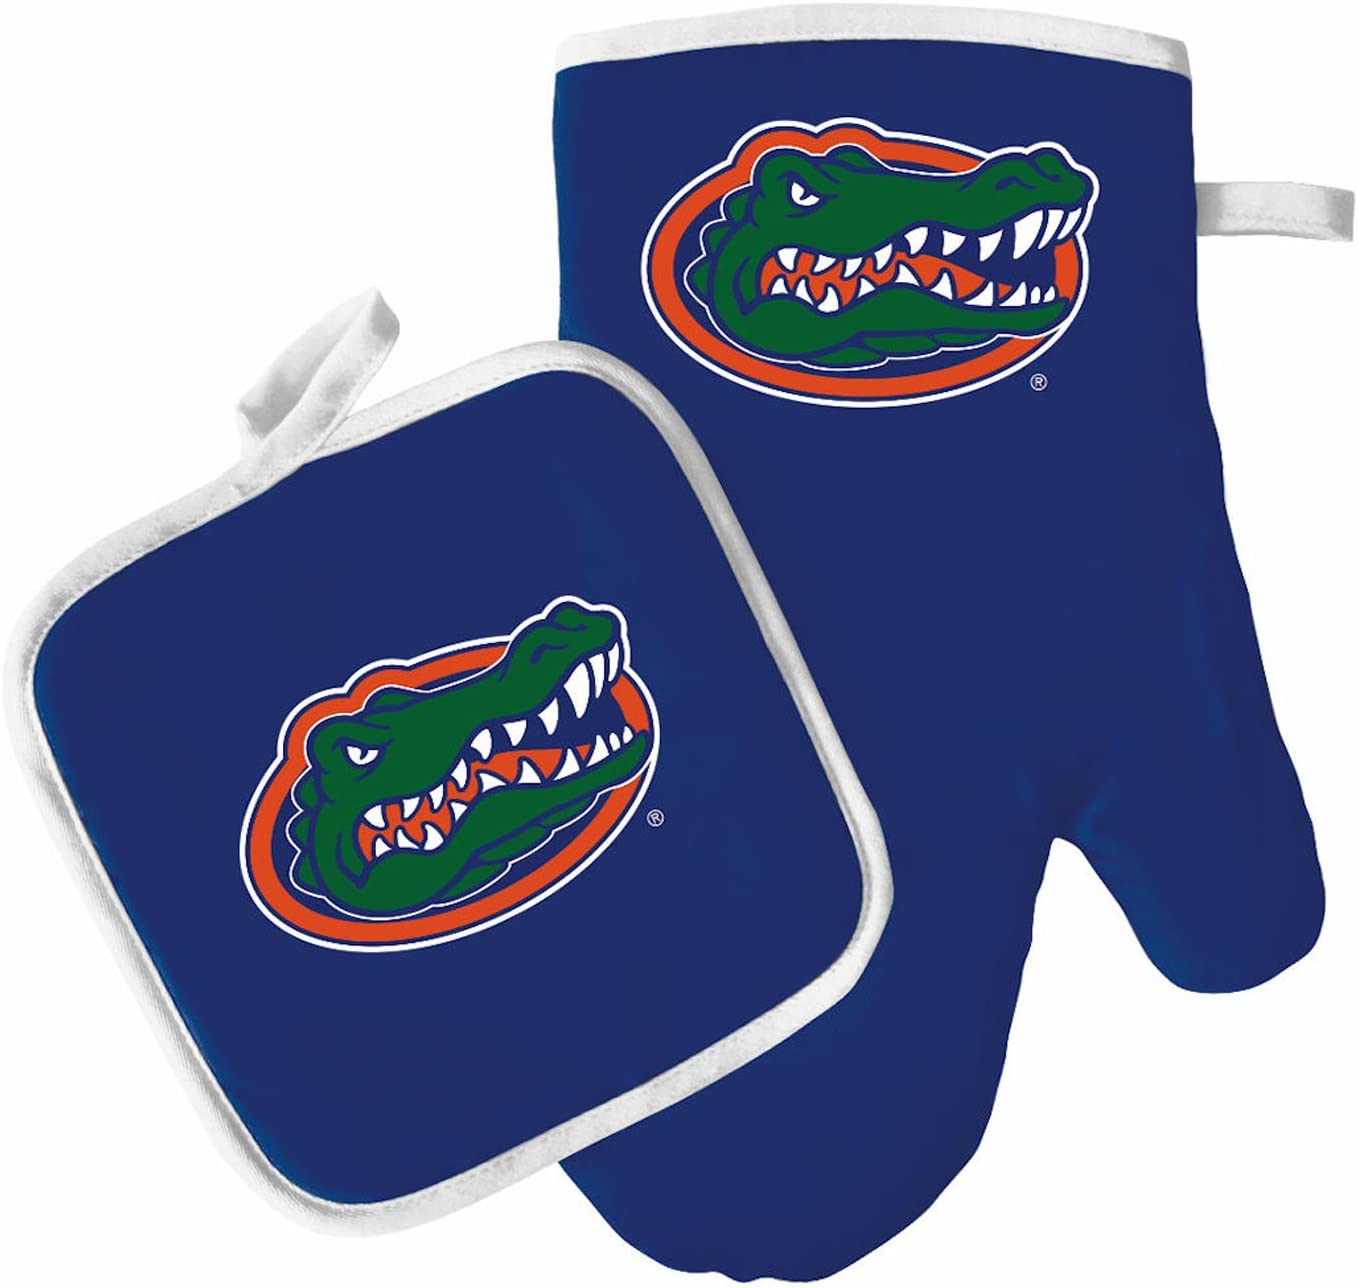 Pro Specialties Group Oven Mitt and Pot Holder Set - Barbeque BBQ Kitchen Backyard Outdoors - NCAA - Florida Gators